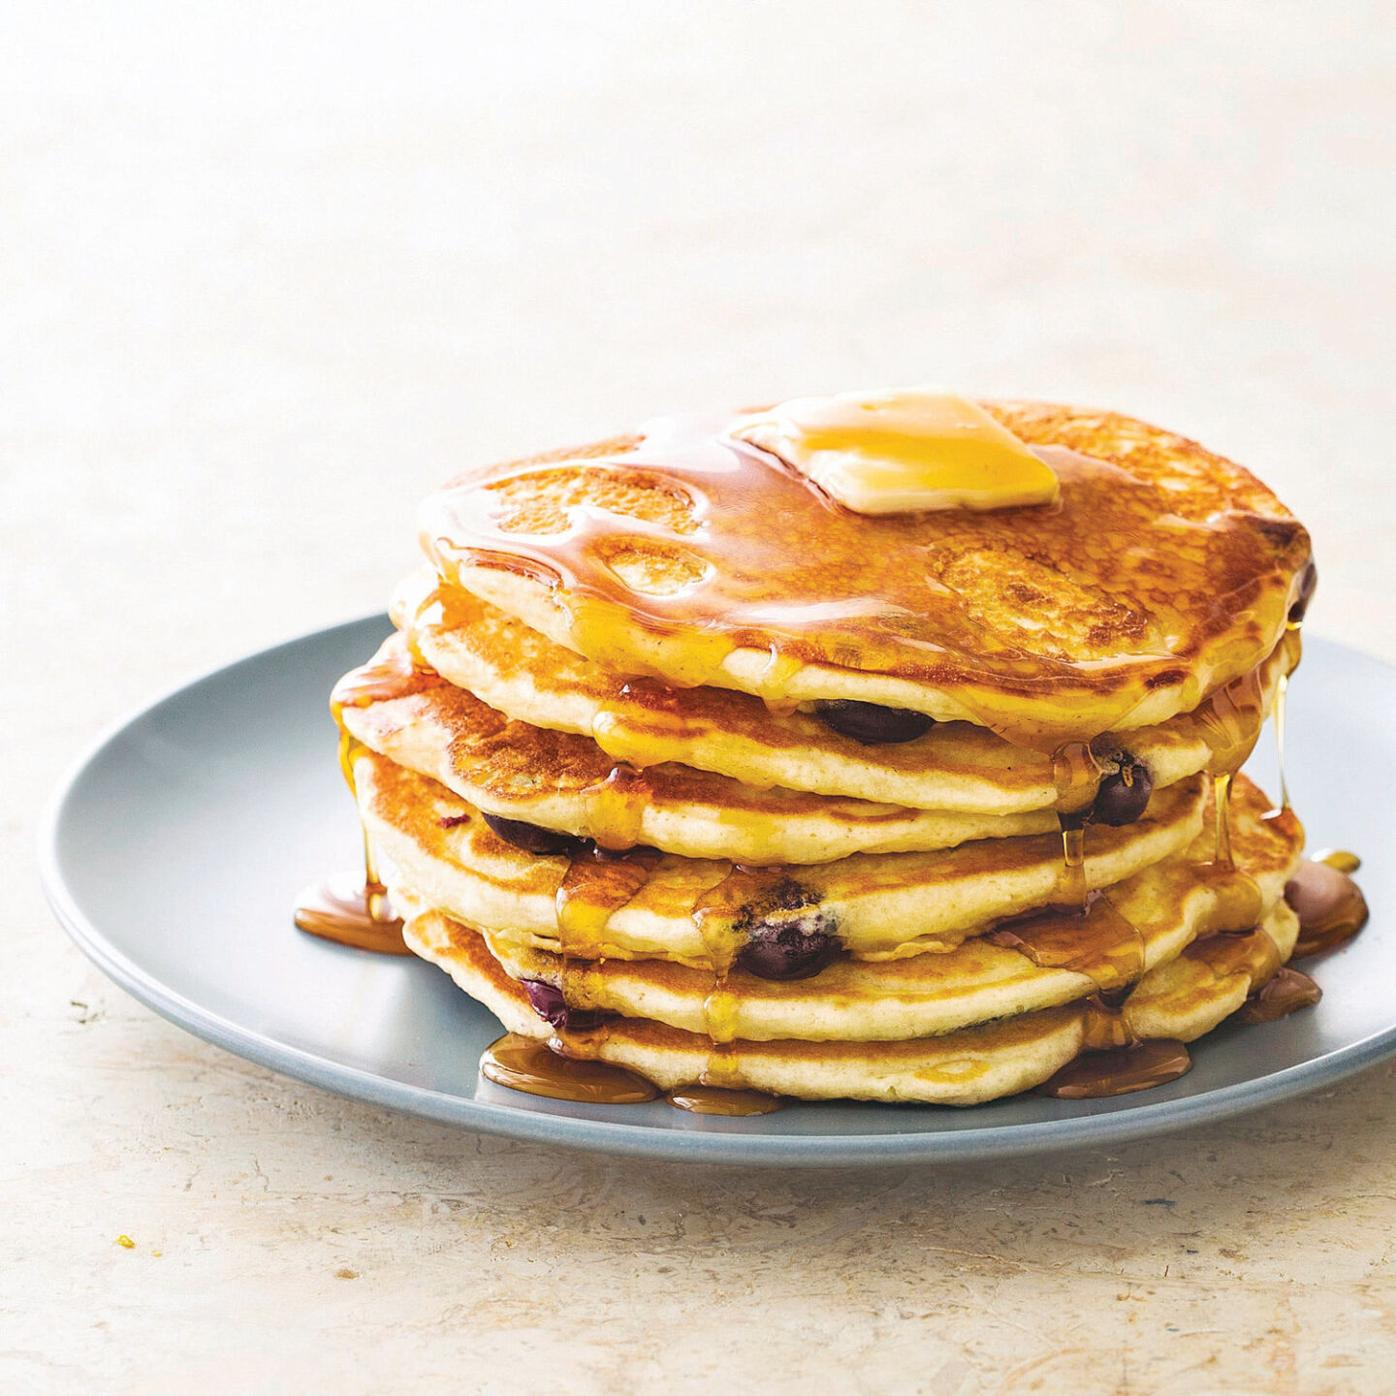 A classic brunch starts with a stack of airy pancakes